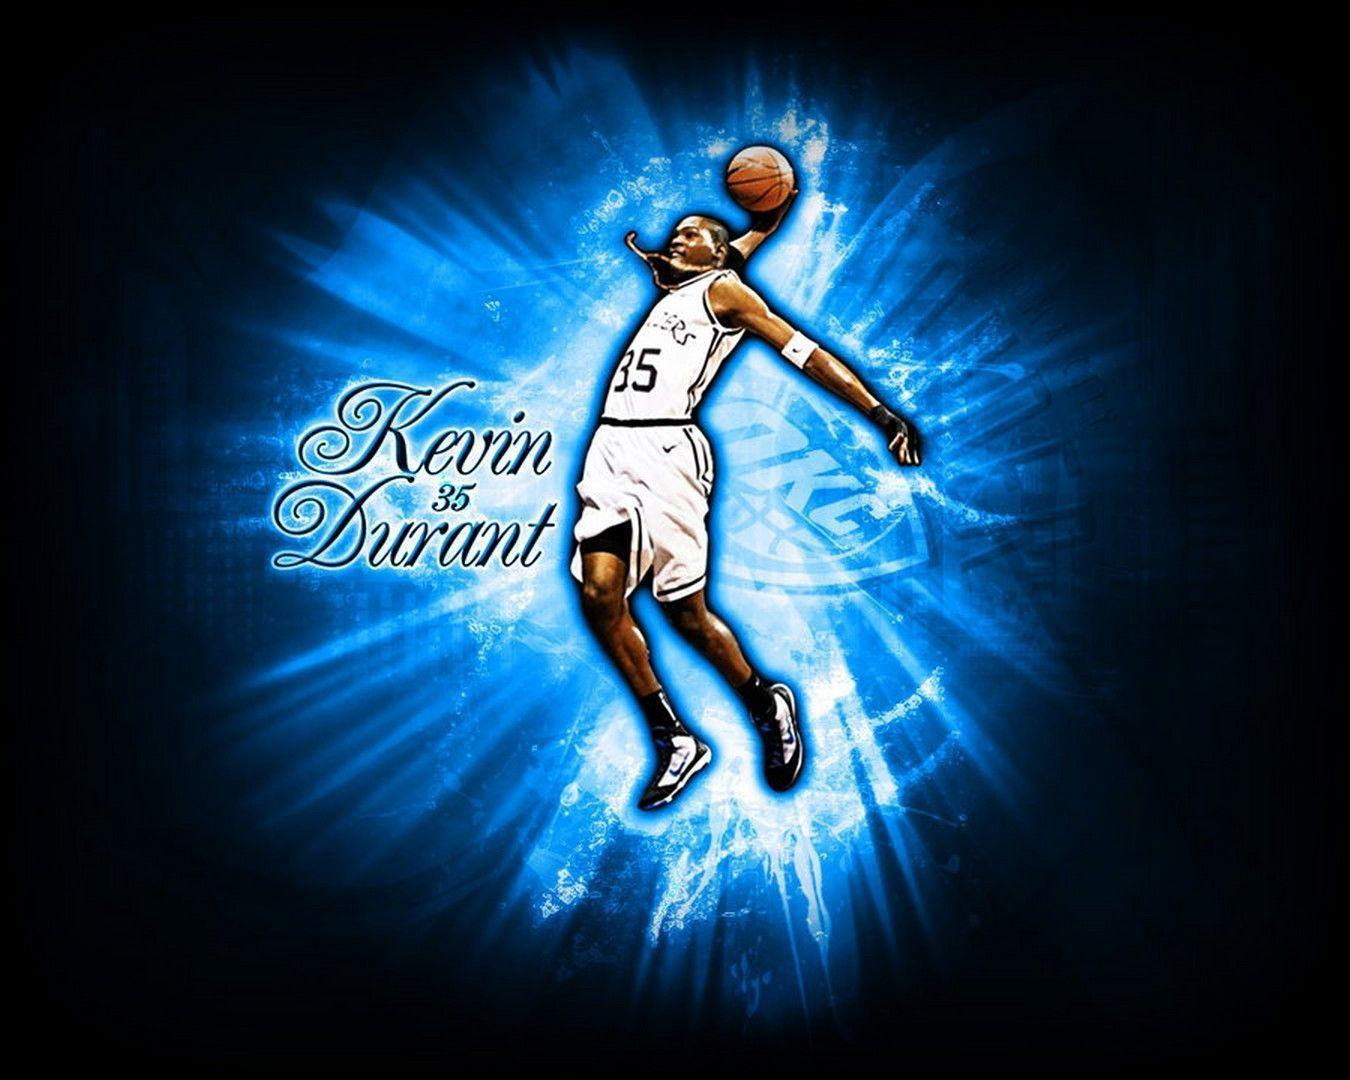 Kevin Durant Wallpapers HD 2016 1350x1080